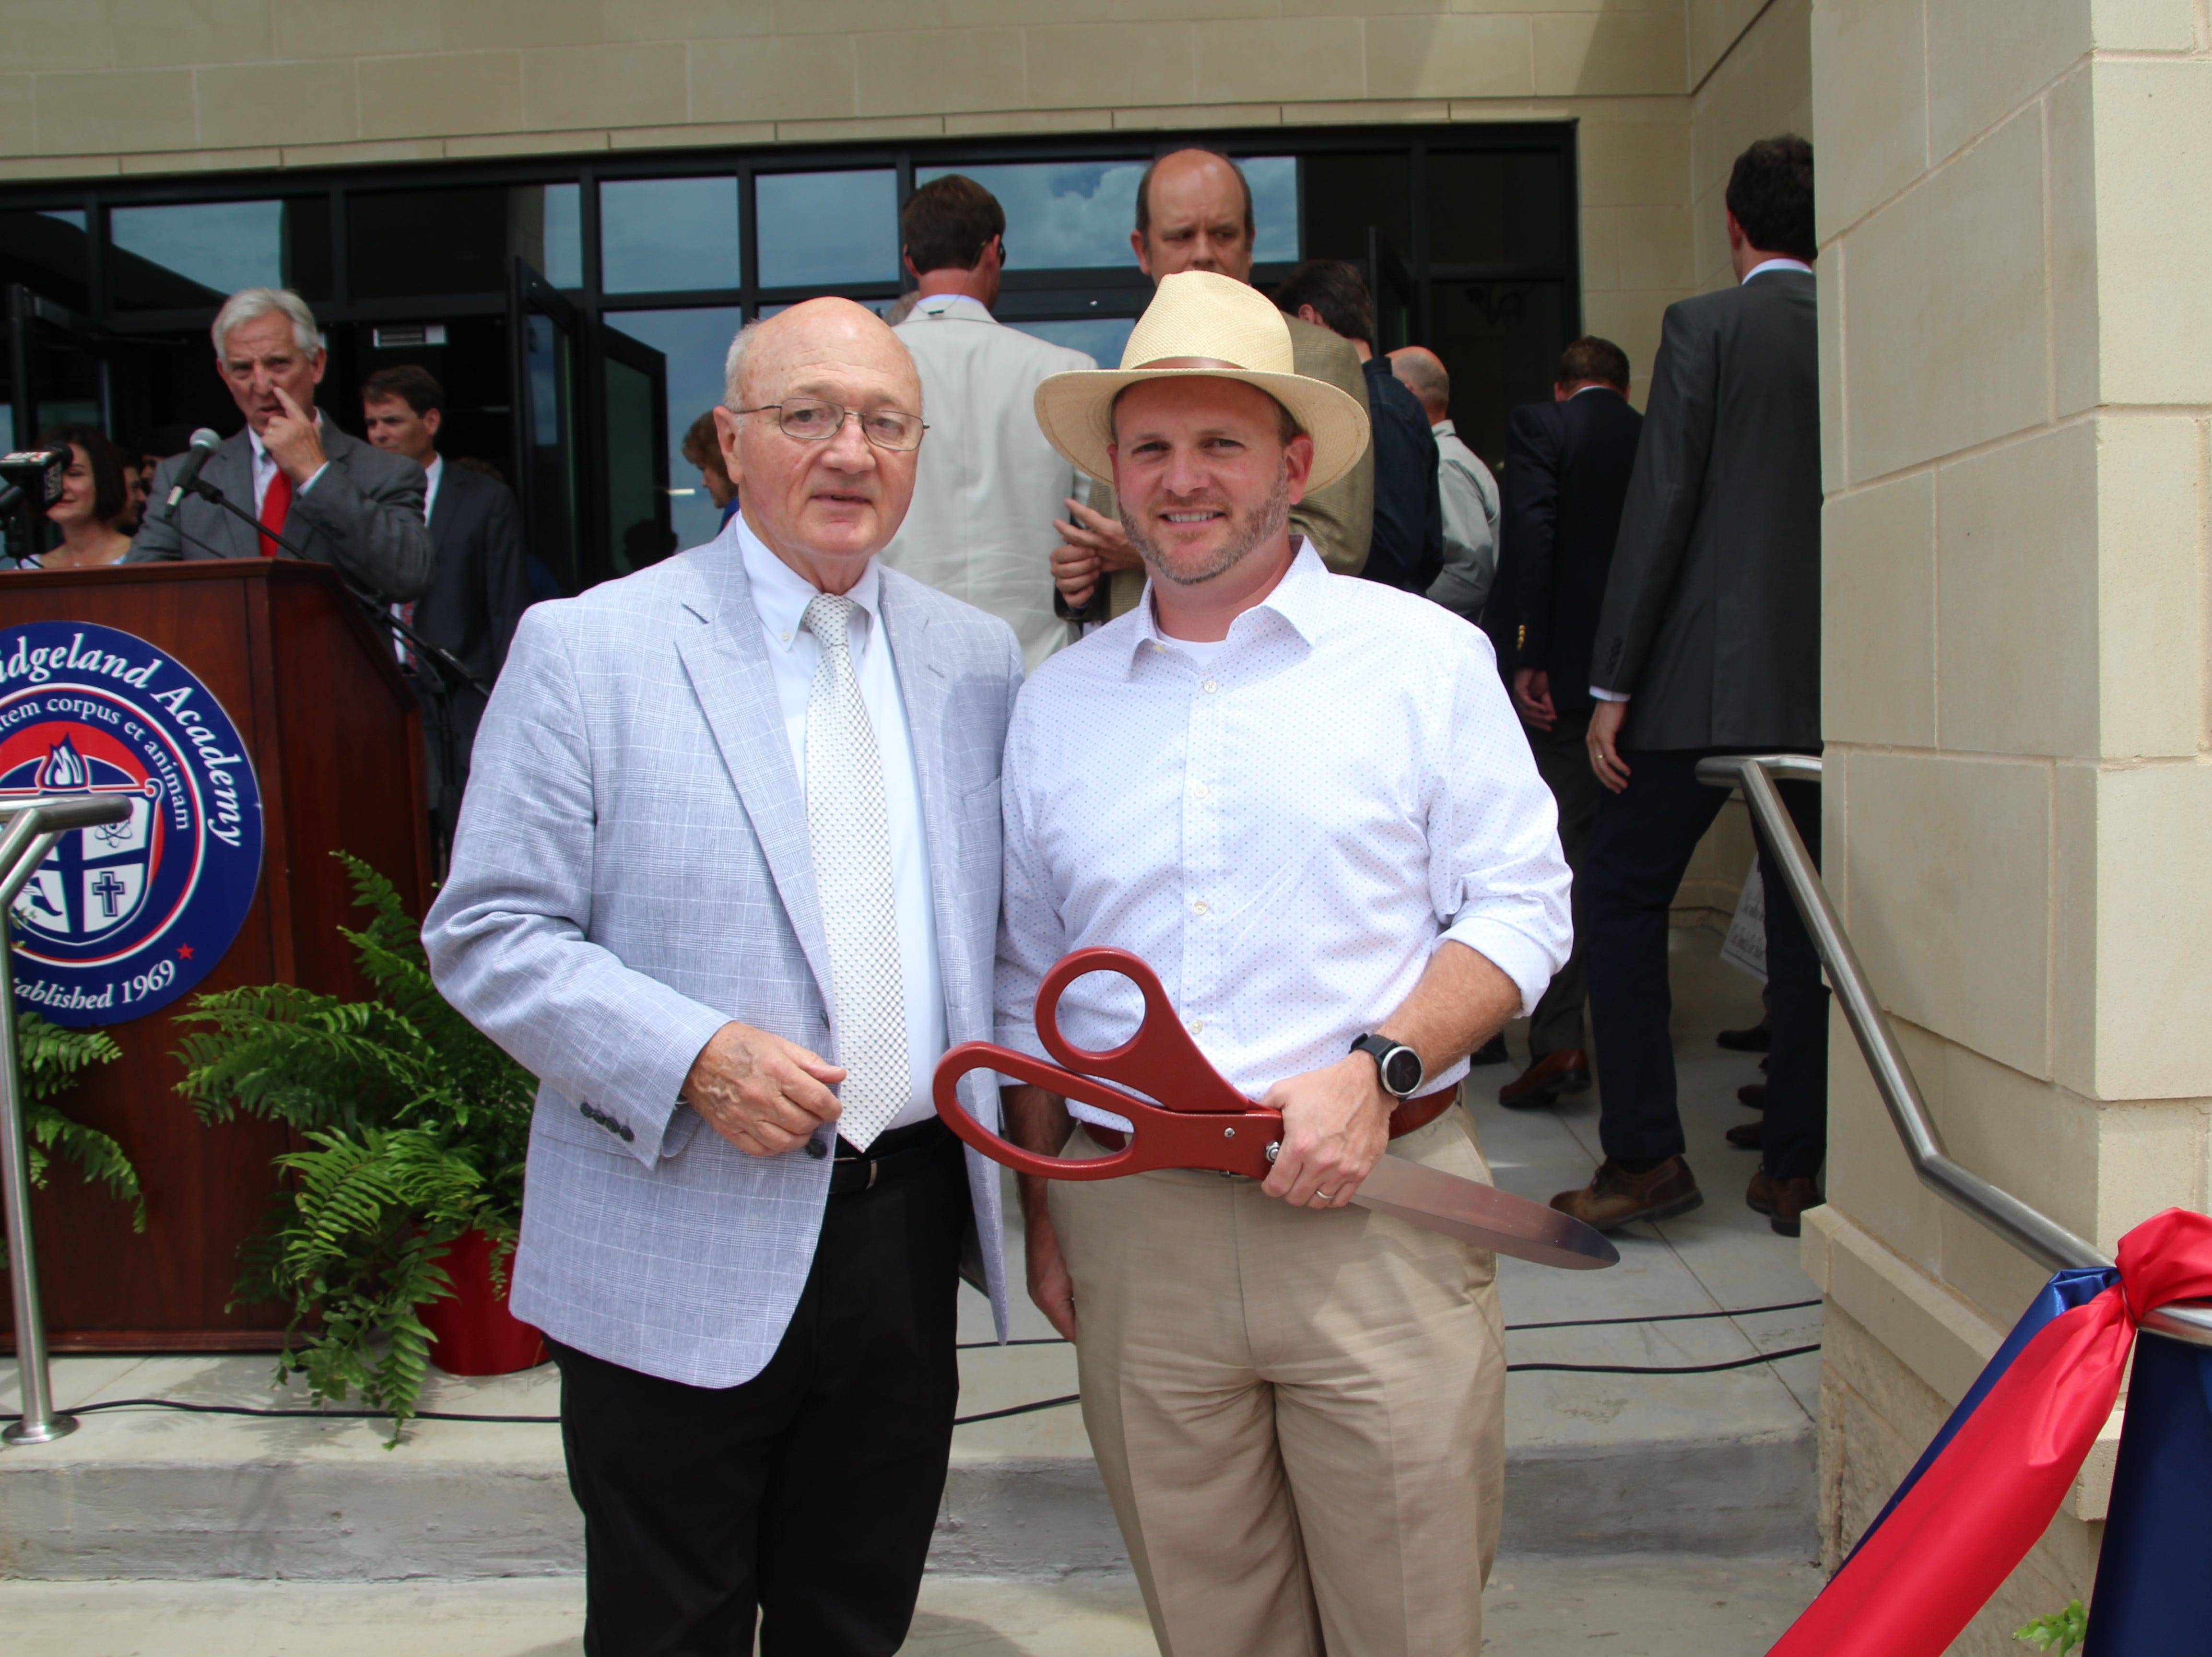 Former Head of School Tommy Thompson and his son MRA Board of Trustees member and alumnus Mathew Thompson